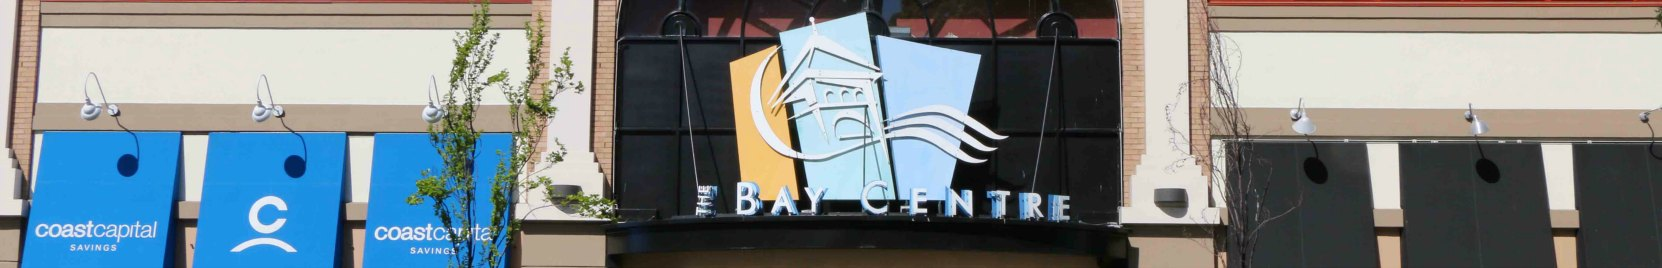 Our web header photo for the Bay Centre, showing the Bay Centre sign on Douglas Street